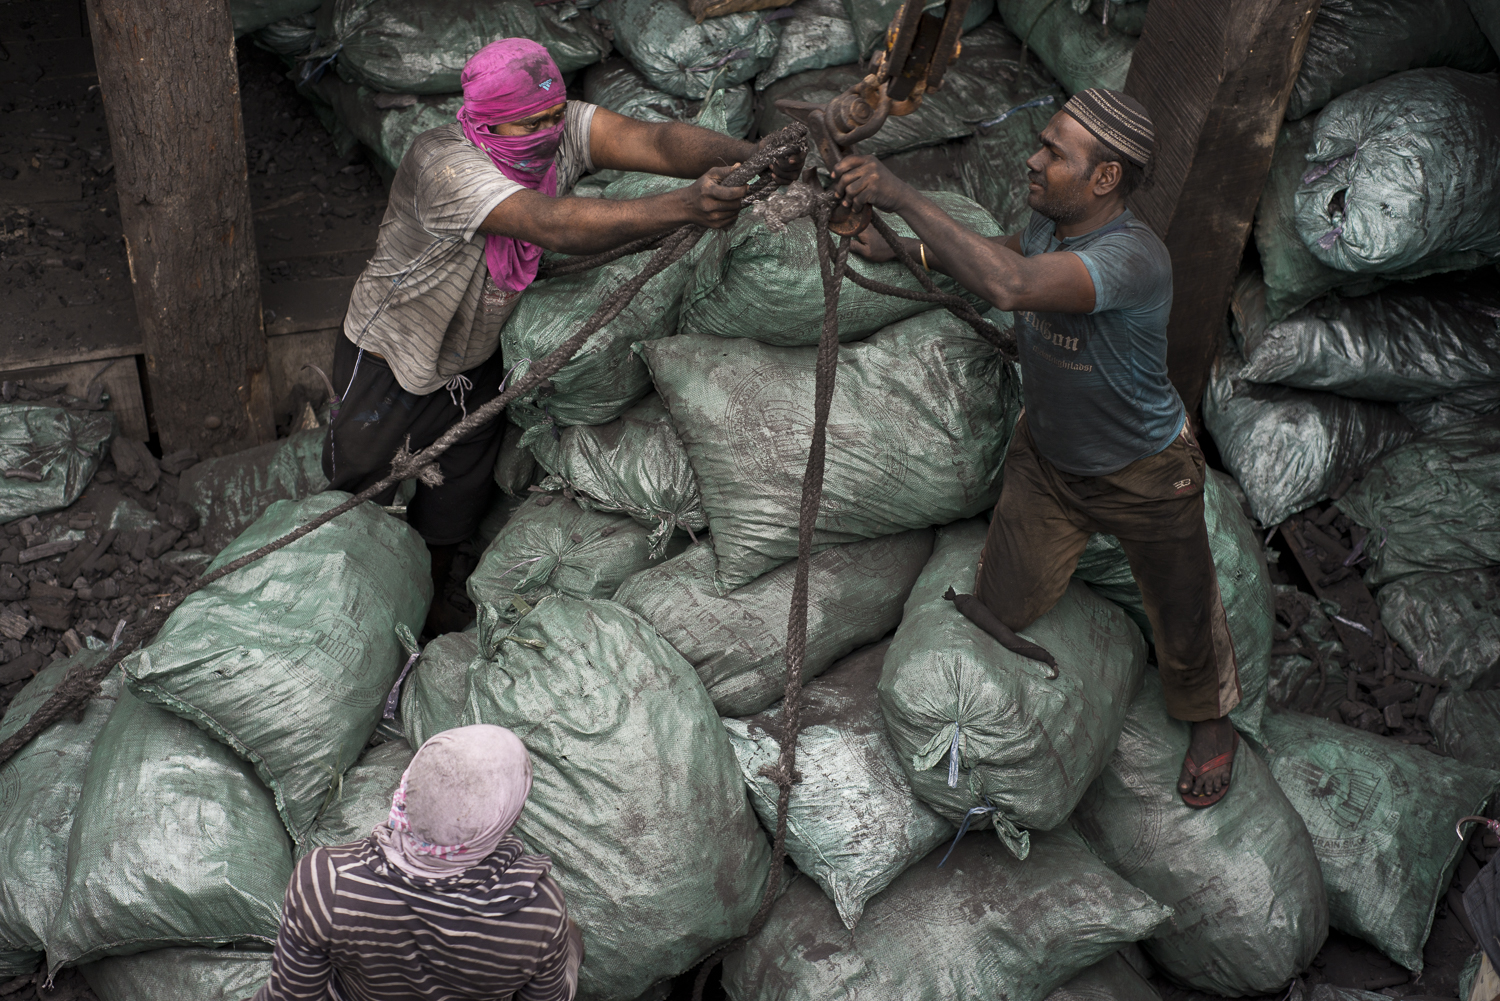 migrants-migrant-workers-charcoal-workers-uae-jo-kearney-photography-video-travel-photography.jpg